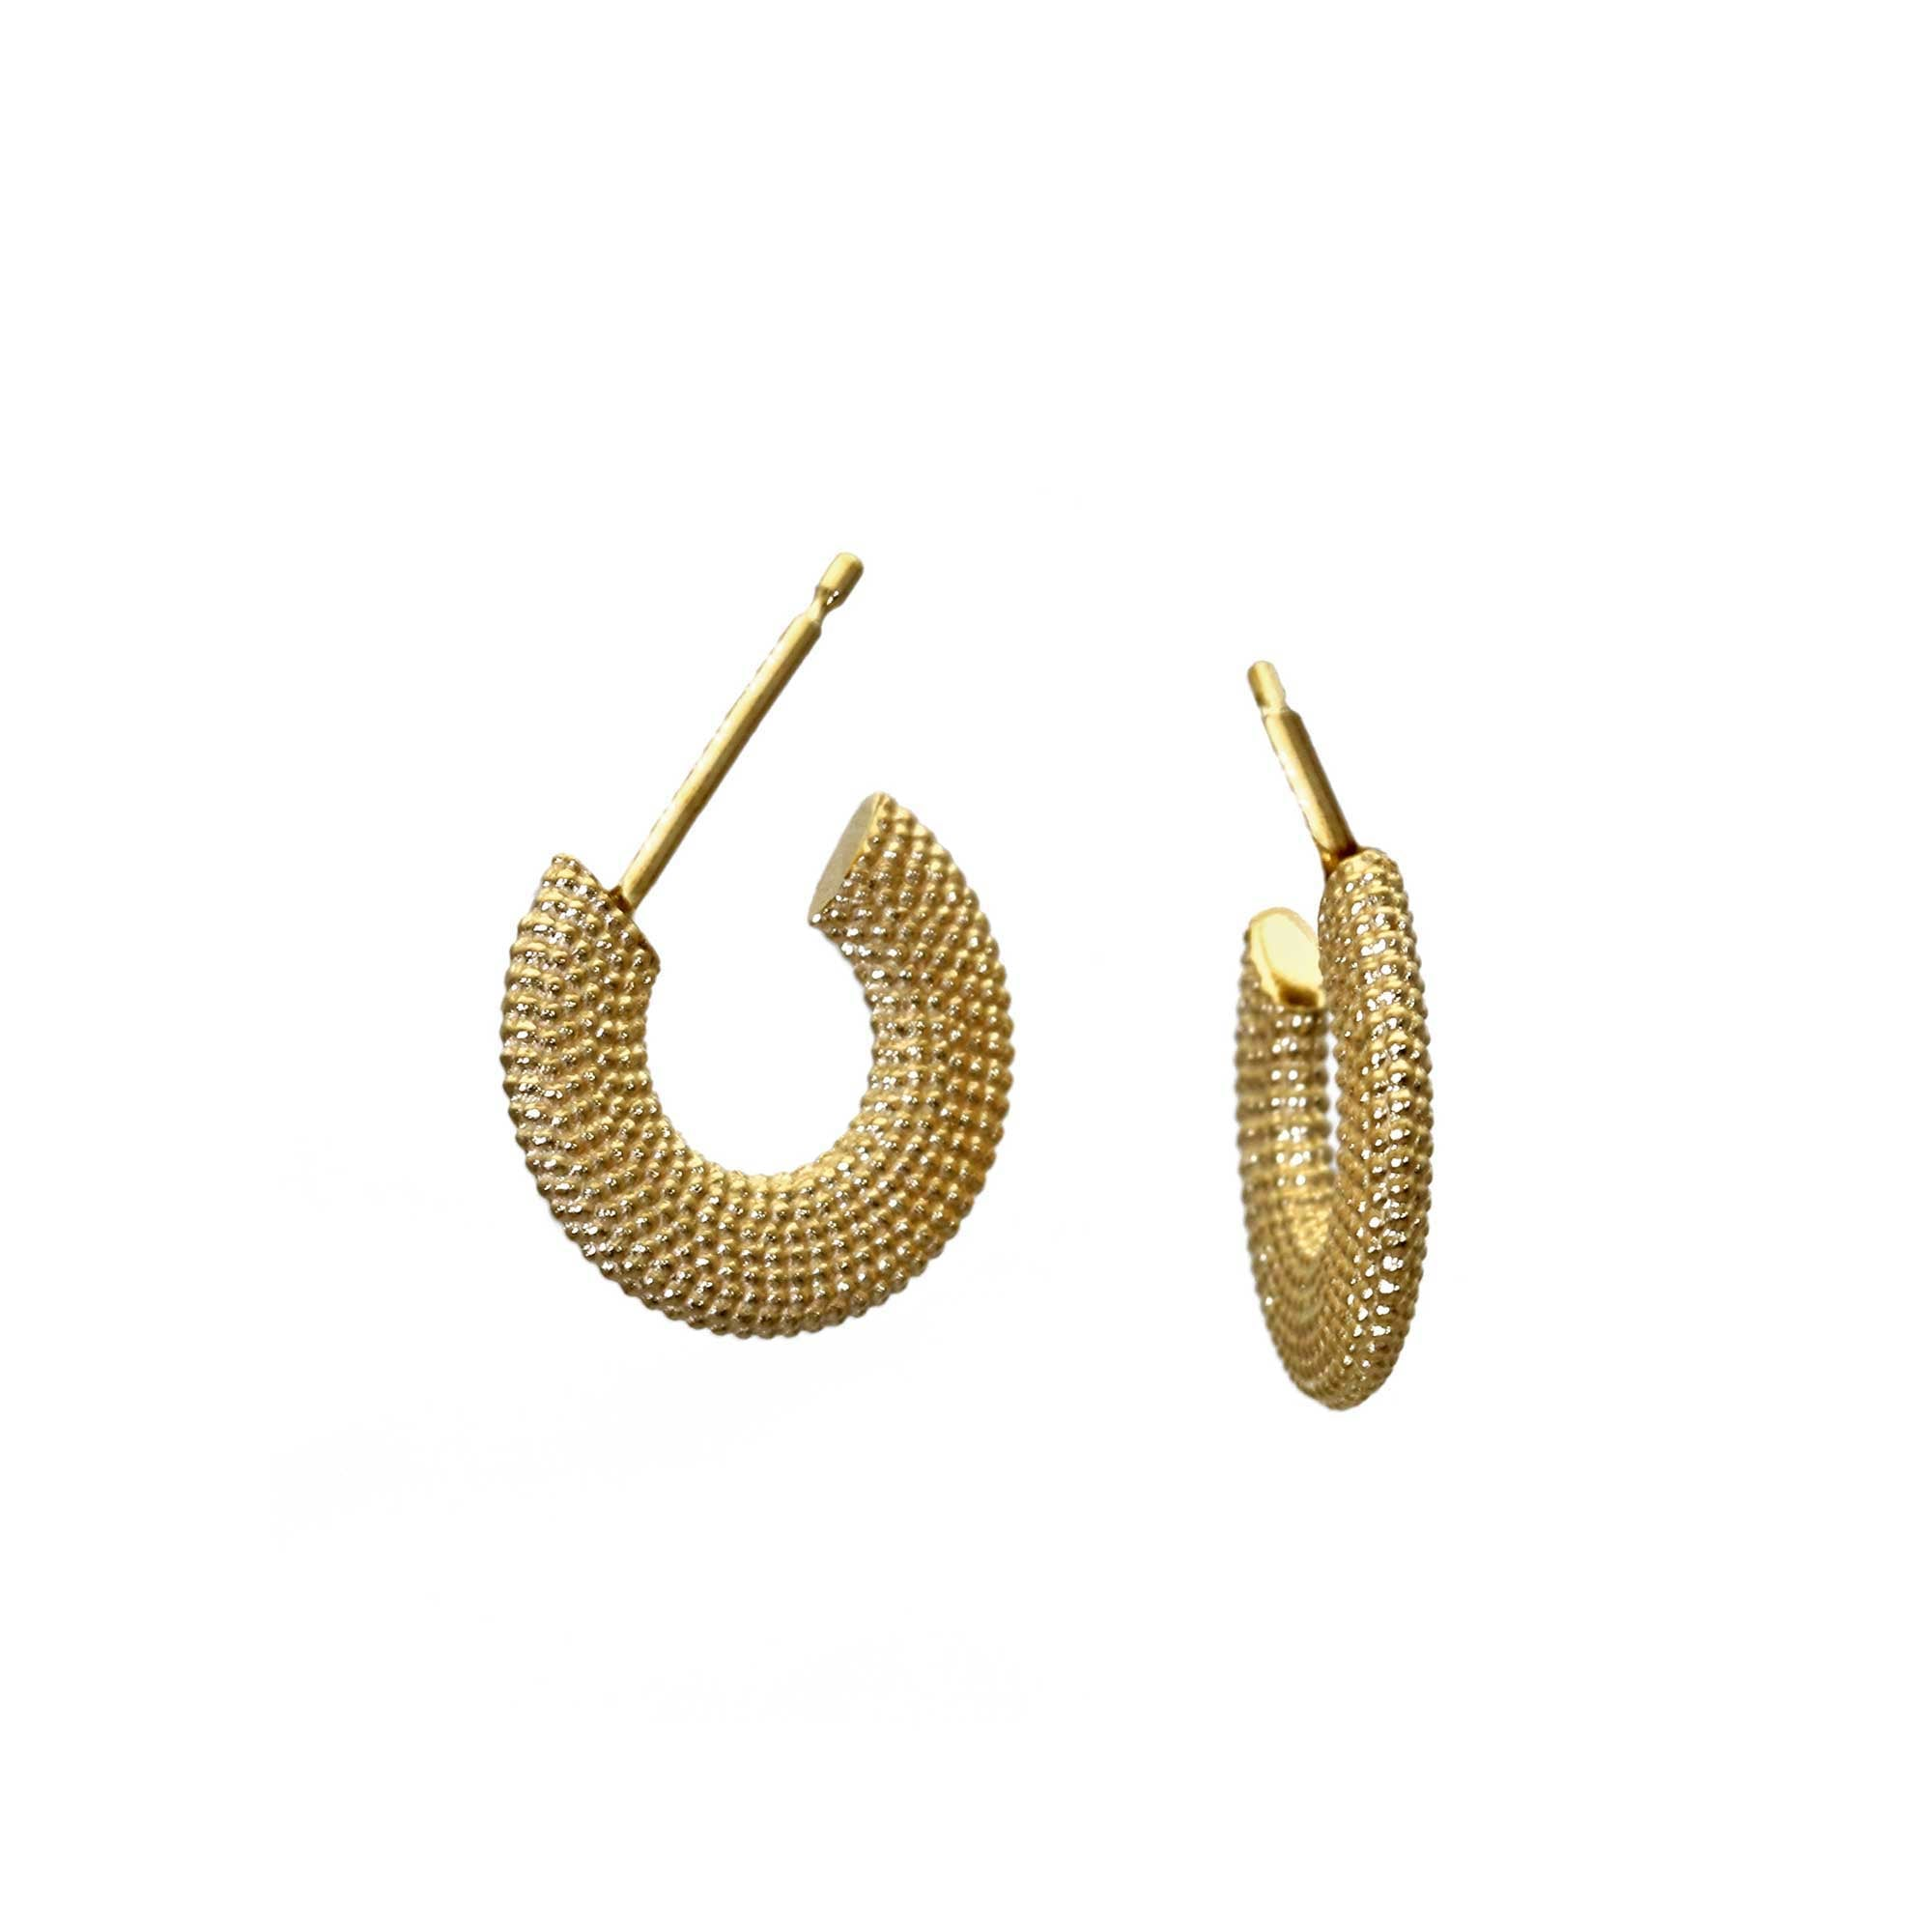 Weol granulated yellow gold chunky hoop earrings